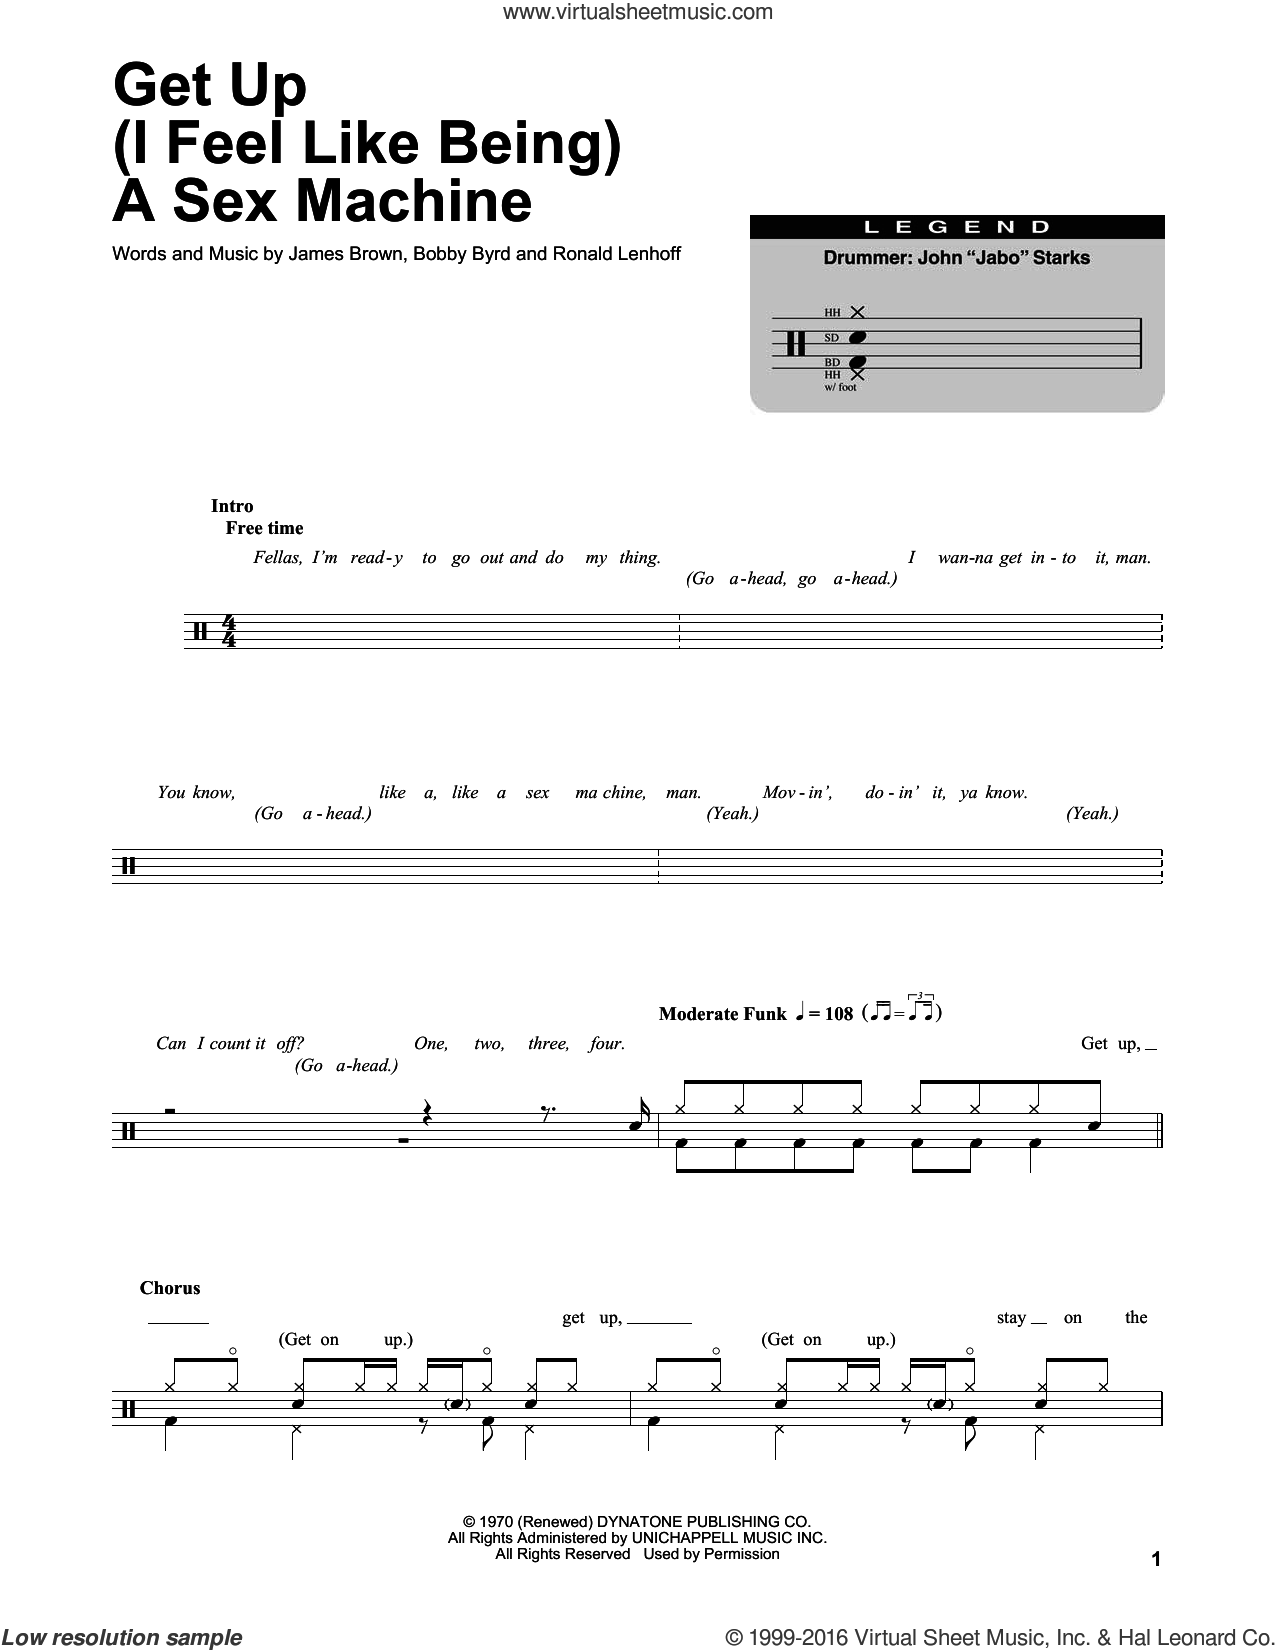 Get Up (I Feel Like Being A Sex Machine) sheet music for drums by Ronald Lenhoff, Bobby Byrd and James Brown. Score Image Preview.